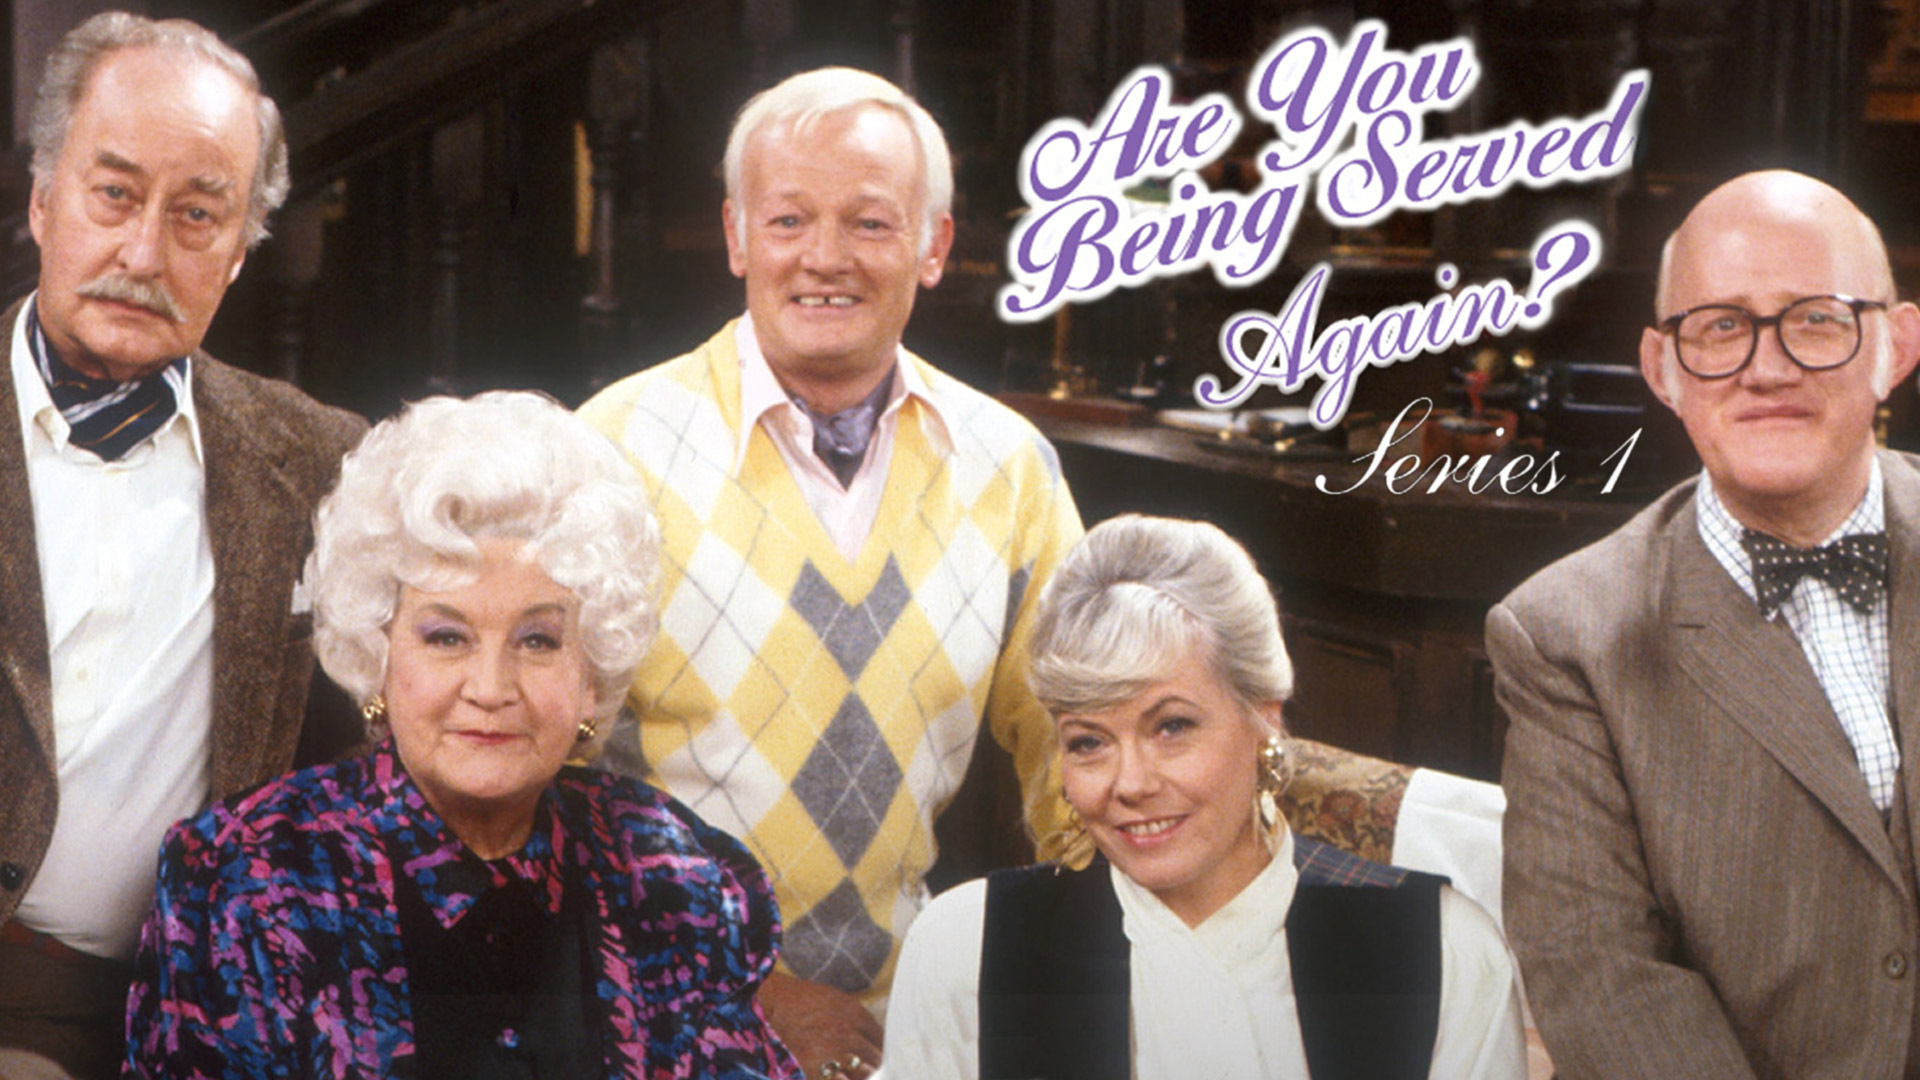 Are You Being Served? Again!, Season 1